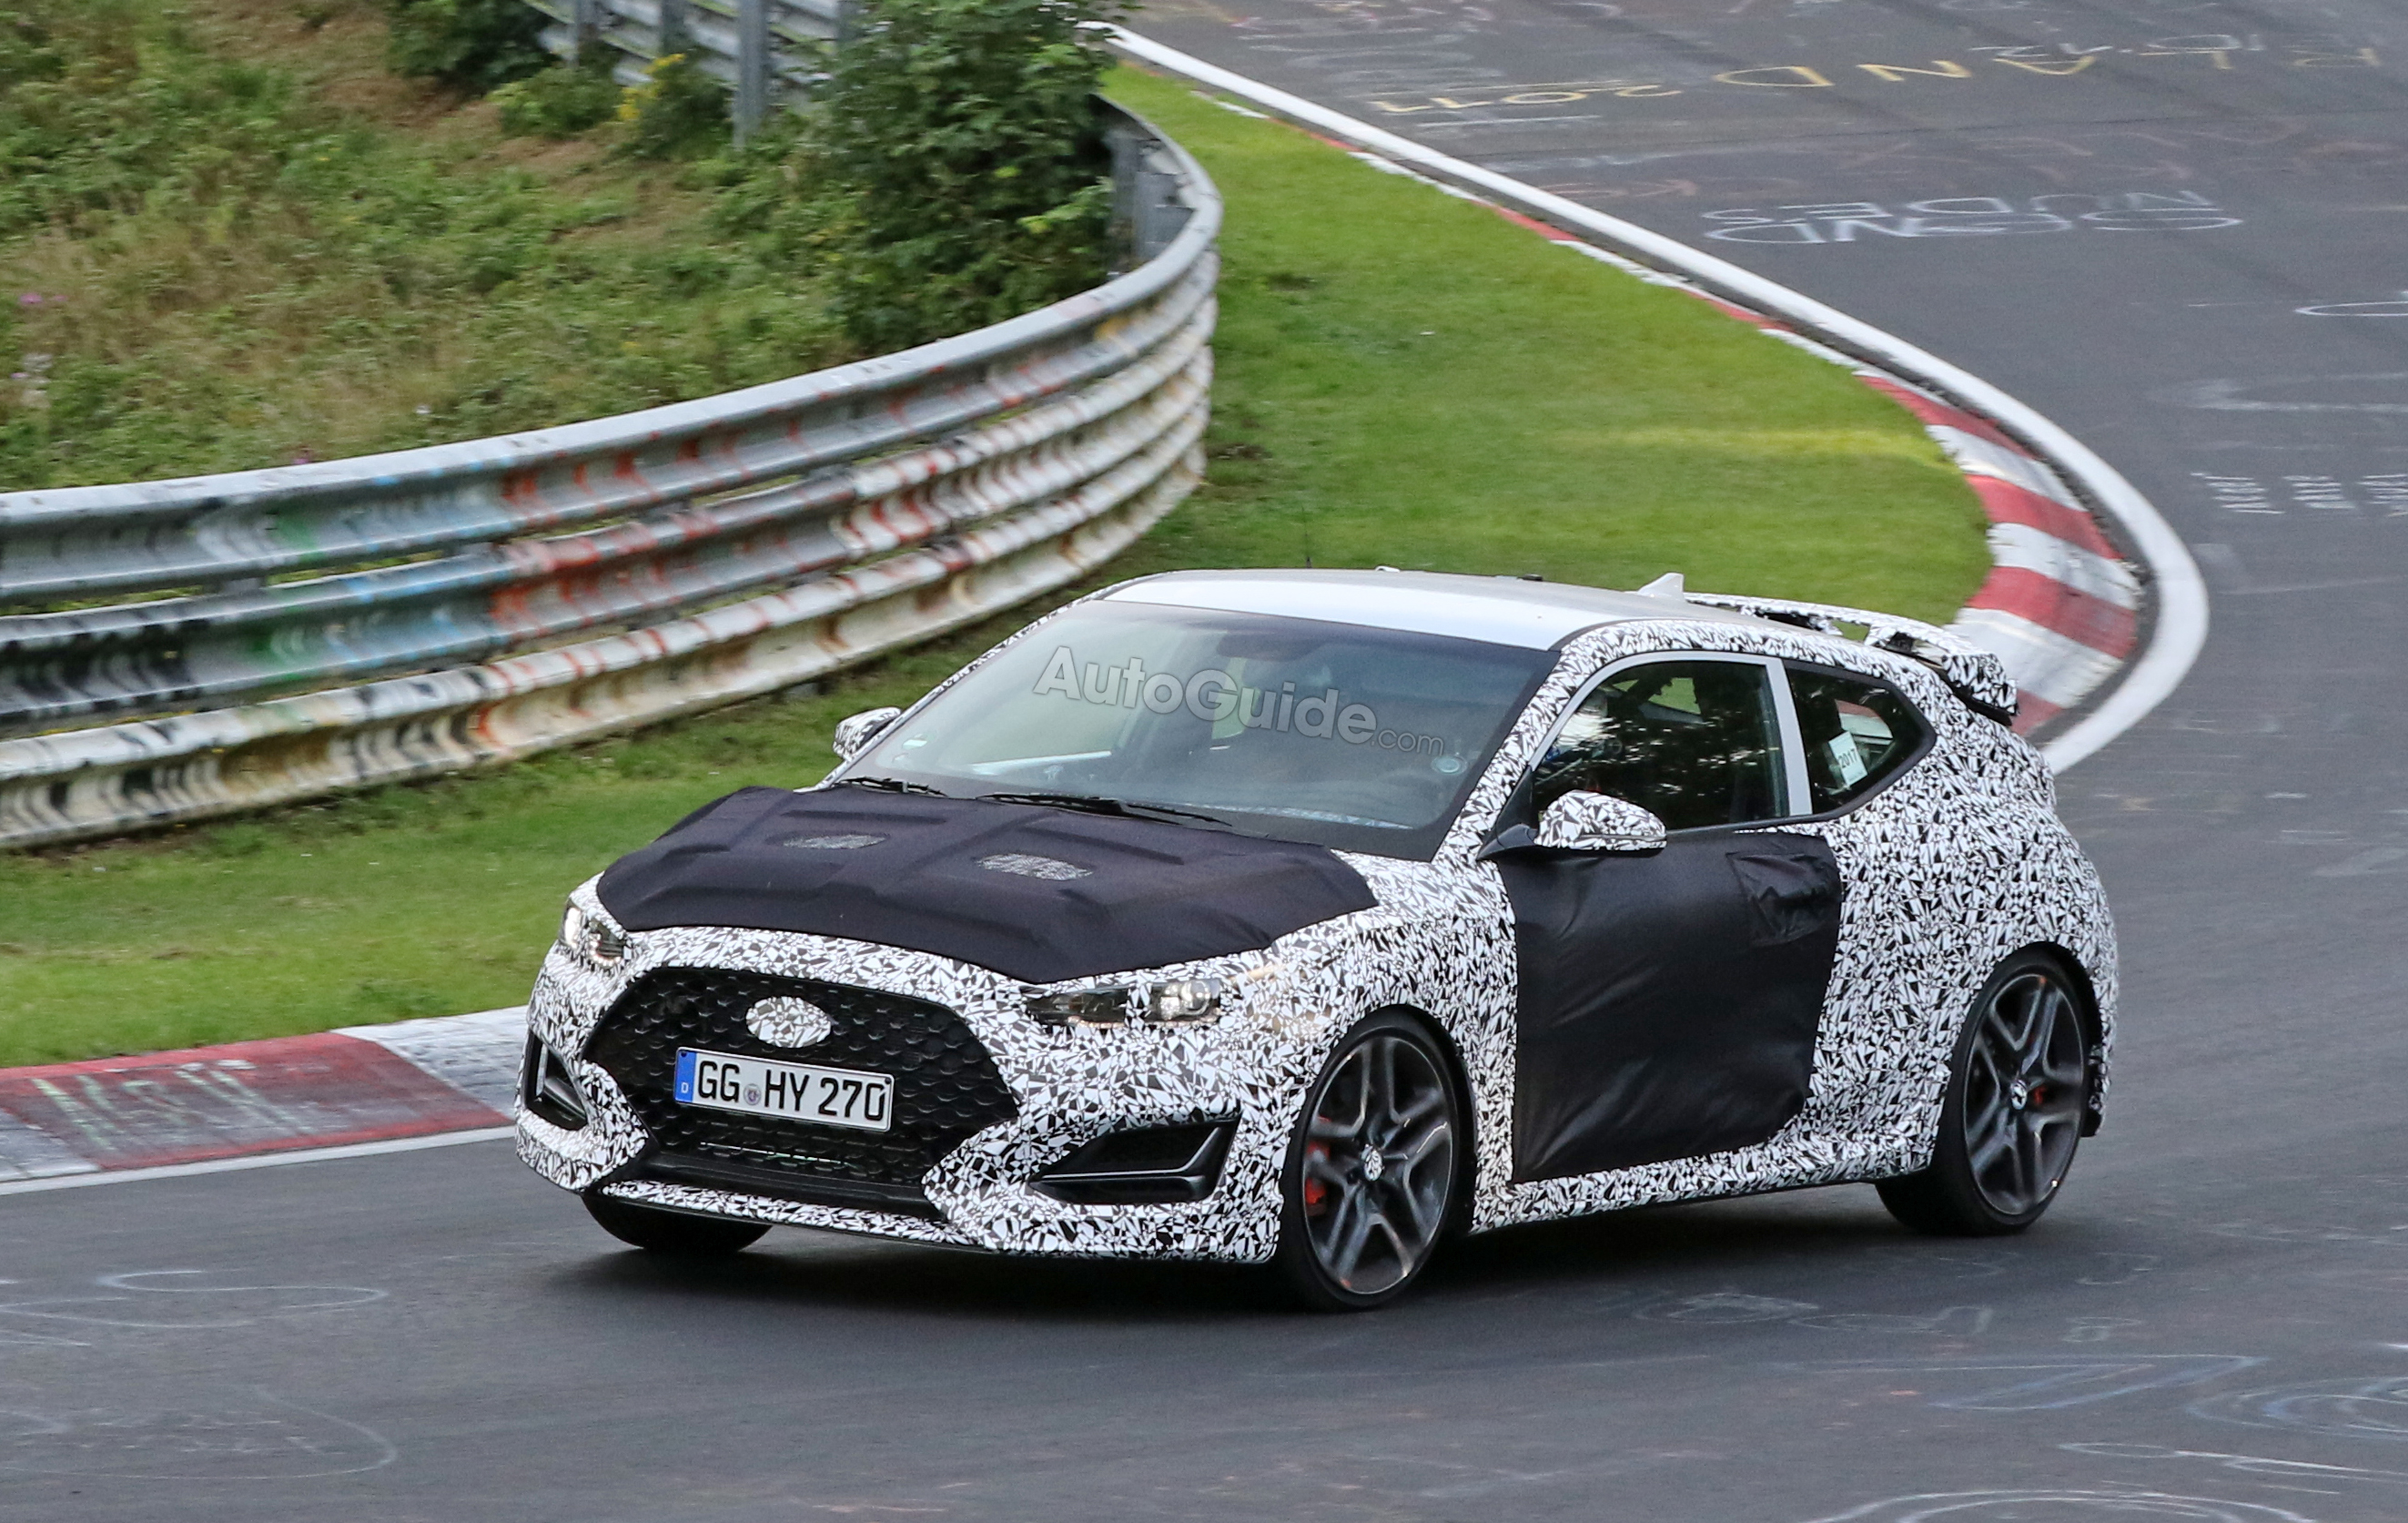 us motorsport n veloster as that roster en will announced of join both reveal official vehicles releases xbox drivable hyundai forza images and for sale also in the debuts windows turbo part cars